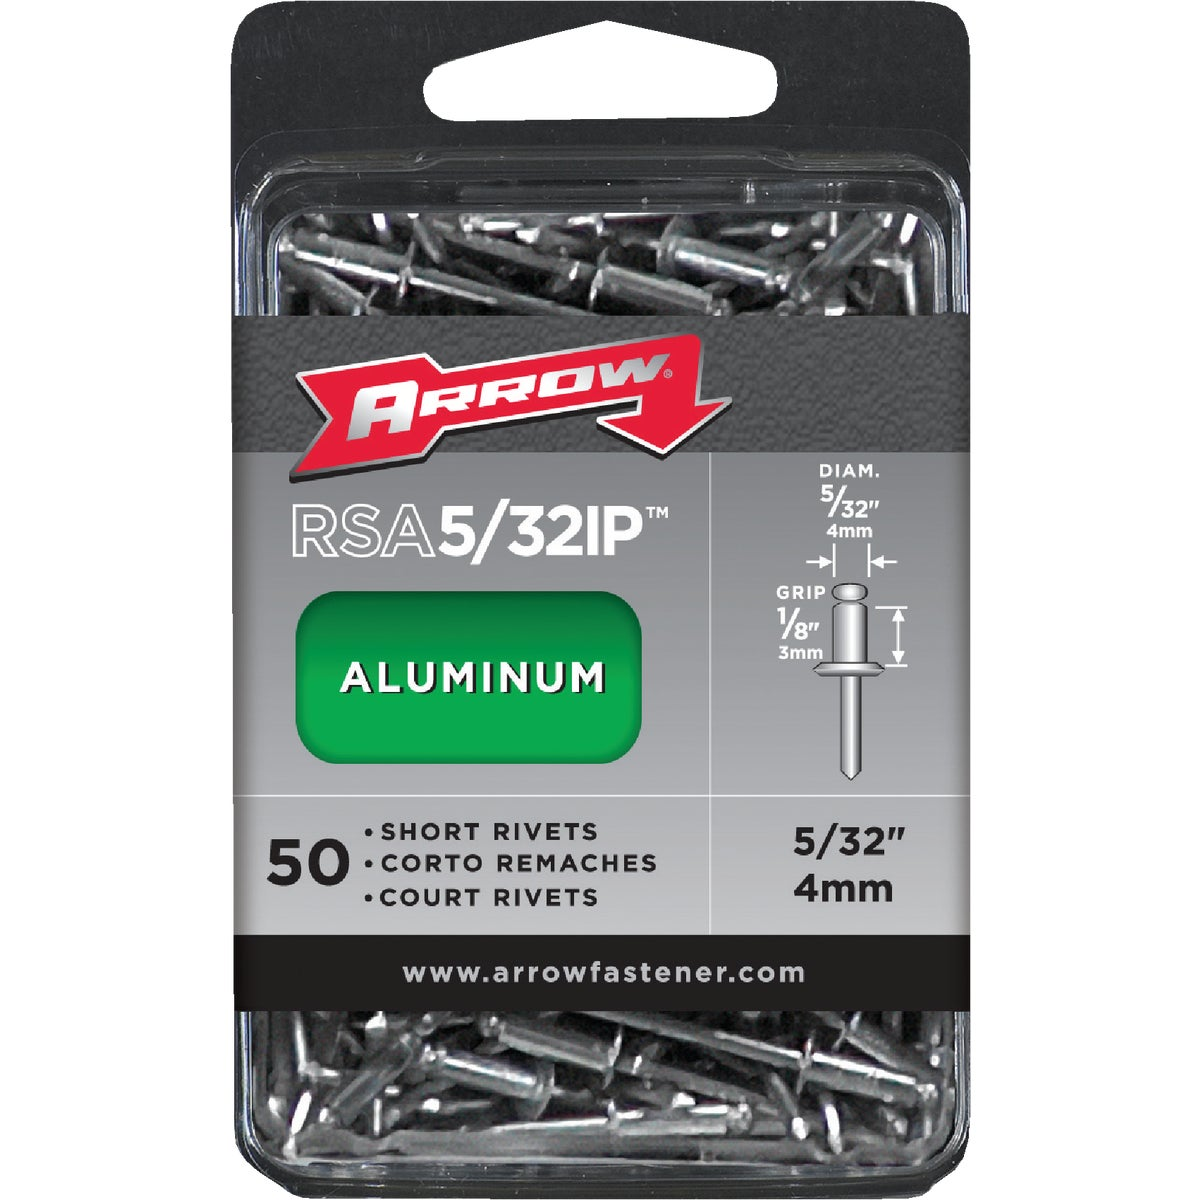 5/32X1/8 ALUM RIVET - RSA5/32IP by Arrow Fastener Co